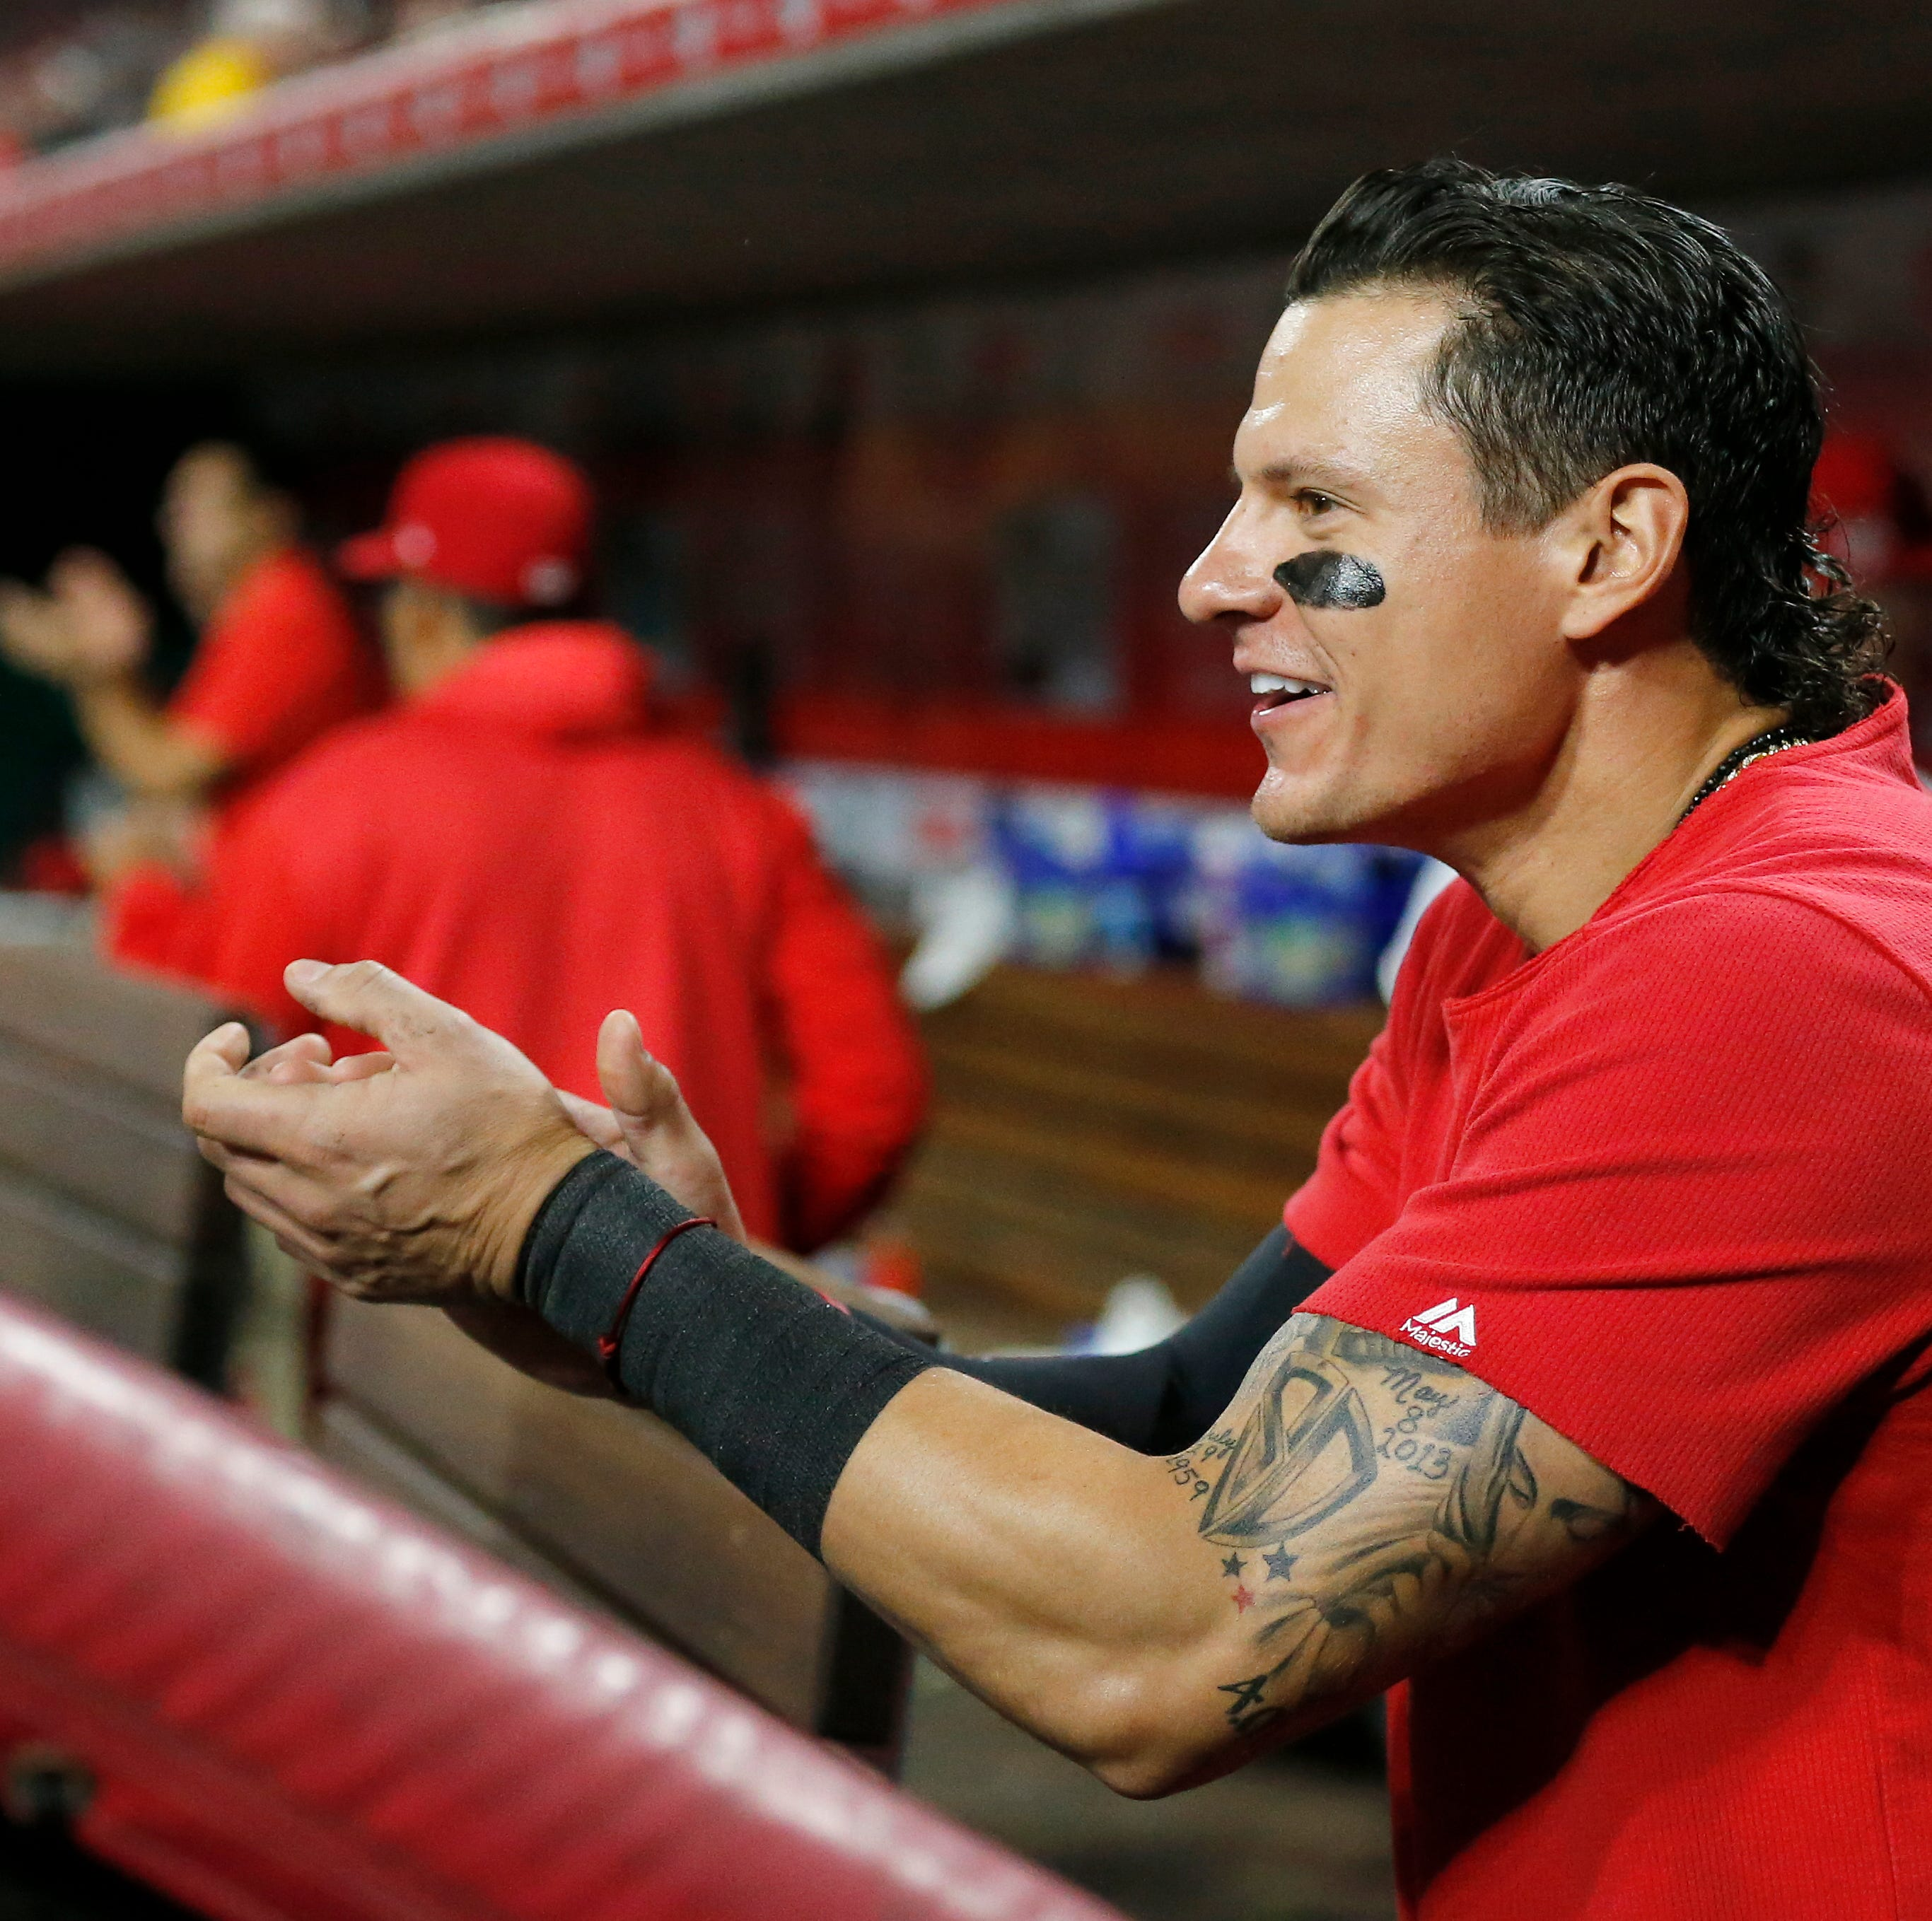 Derek Dietrich on 'Intentional Talk': I've got to think of something for throwbacks Sunday